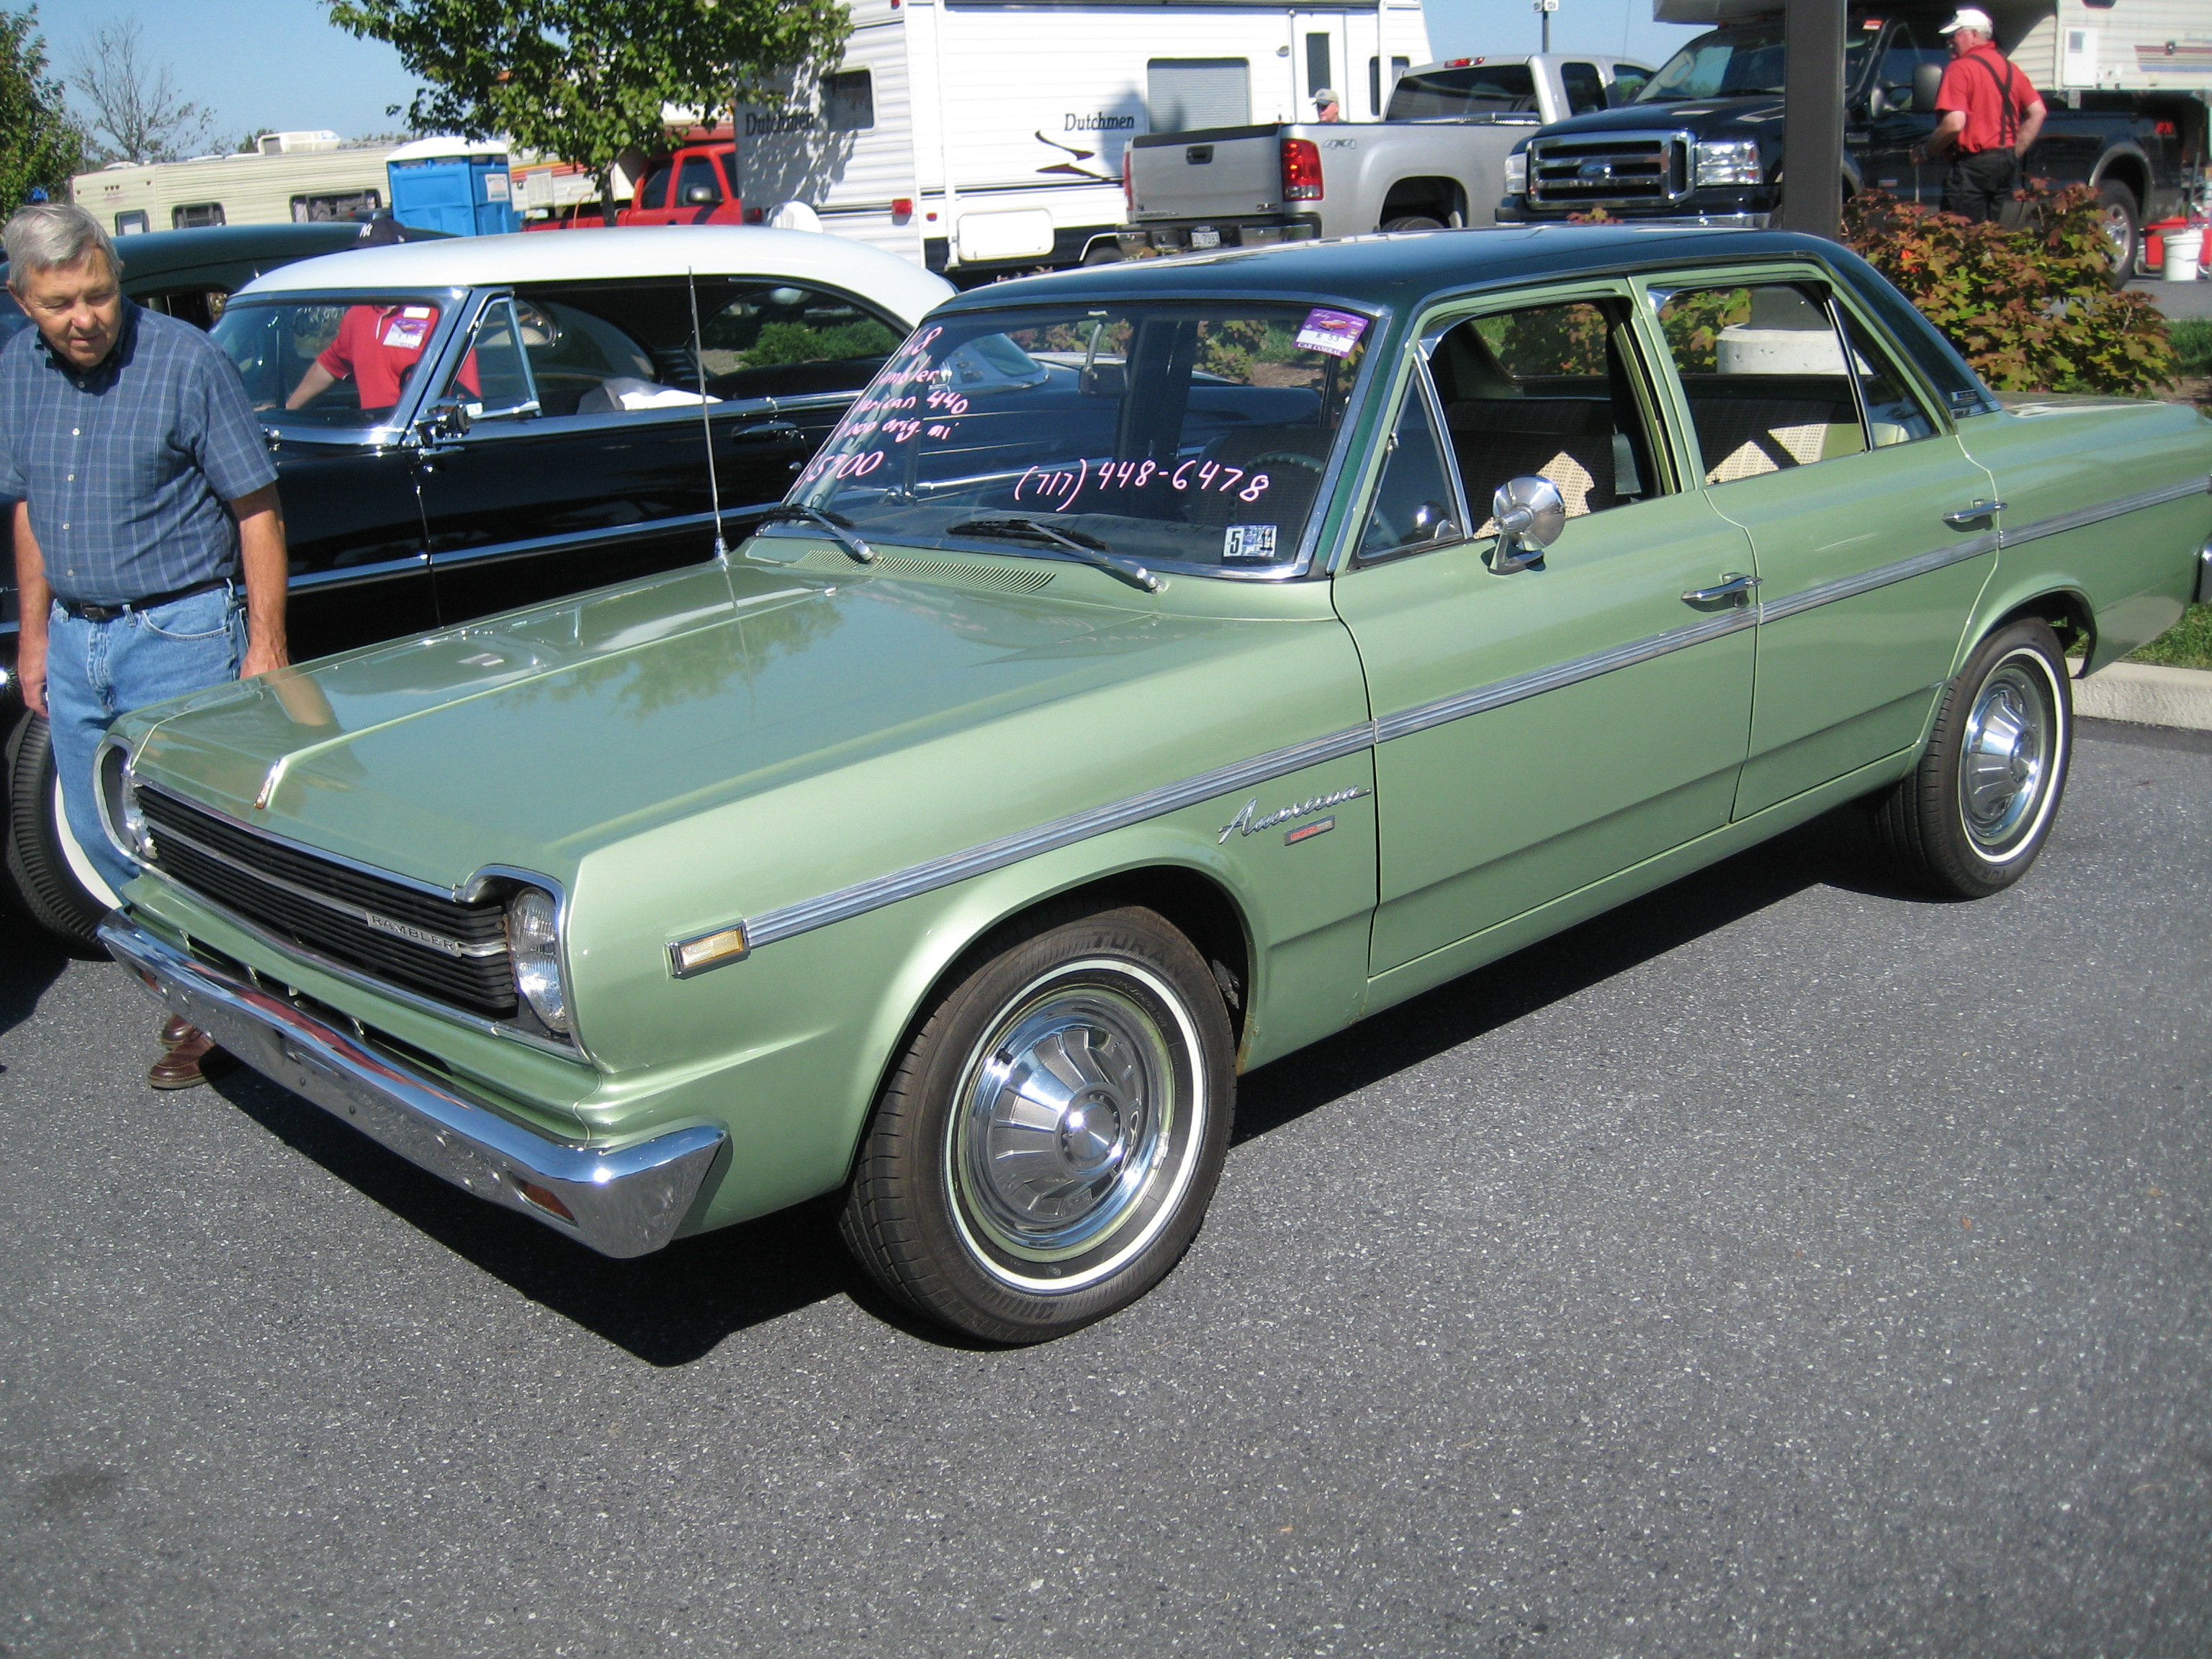 1968 Amc Rambler 1967 Rebel Wiring Diagram File American Wikimedia Commons 3072x2304